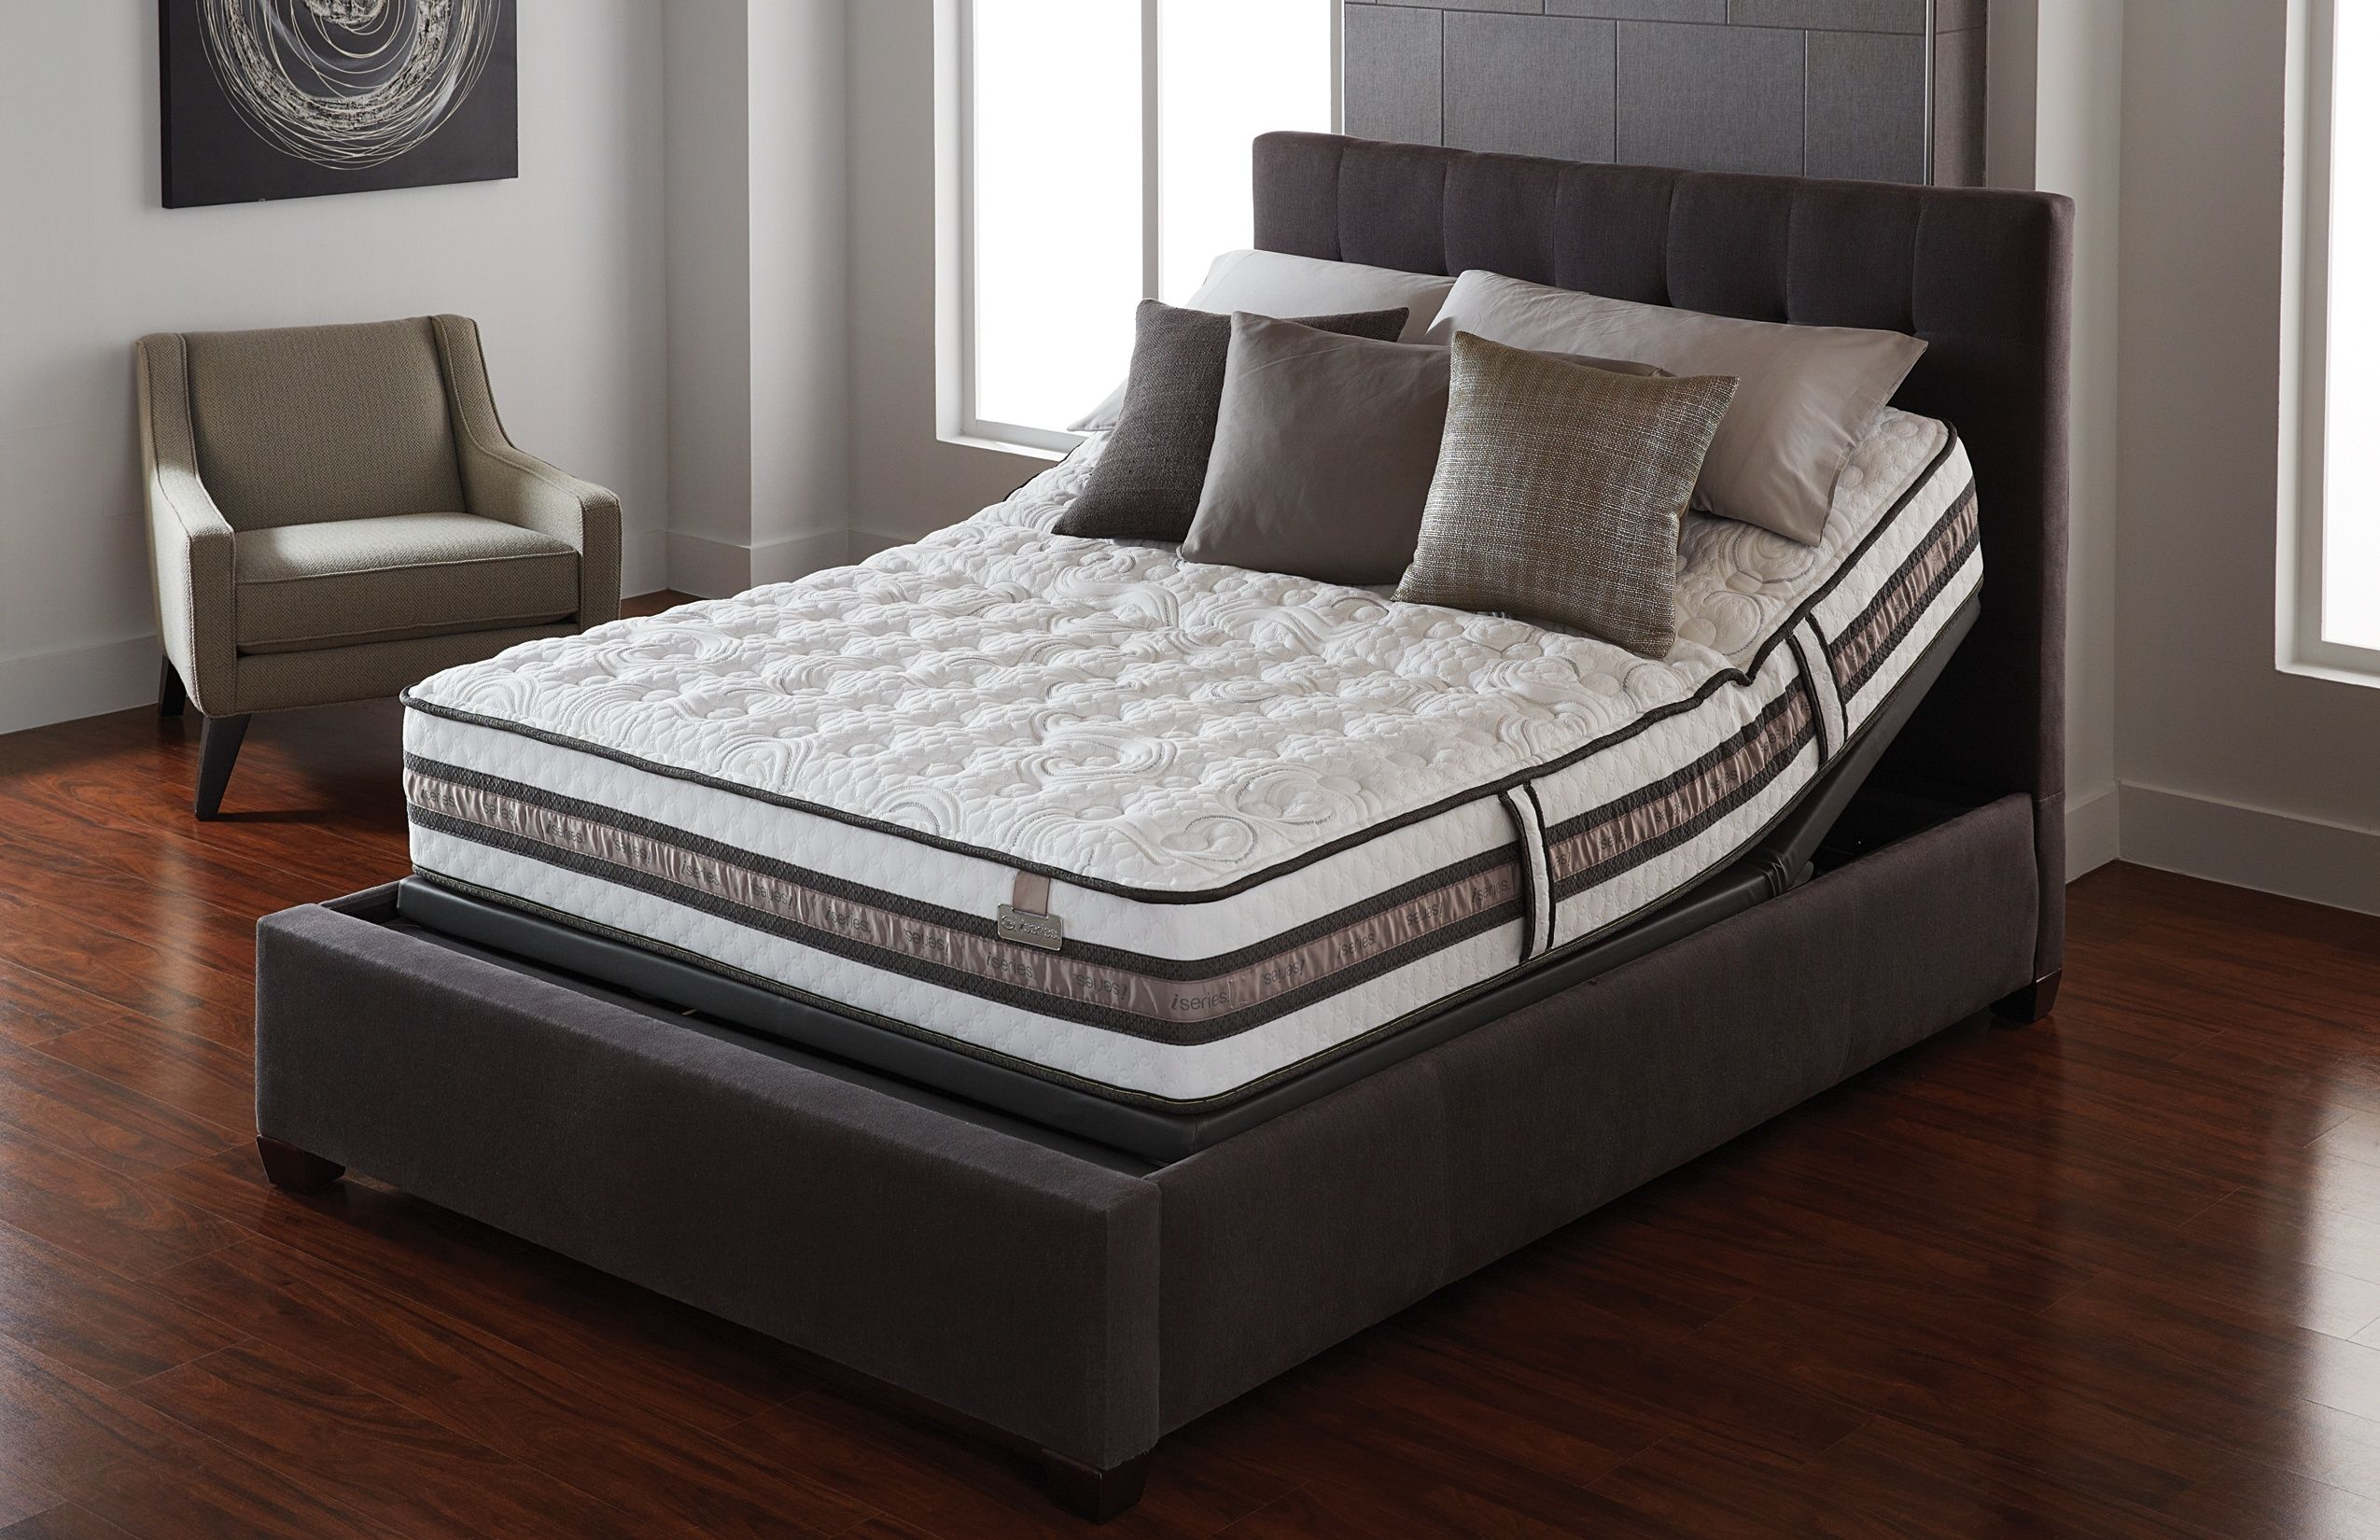 pain or may lead mattresses firm blog type mattress body for and is top are best what needle too pins choice to your softer thinner a restonic sensation the of types pillow shoulder